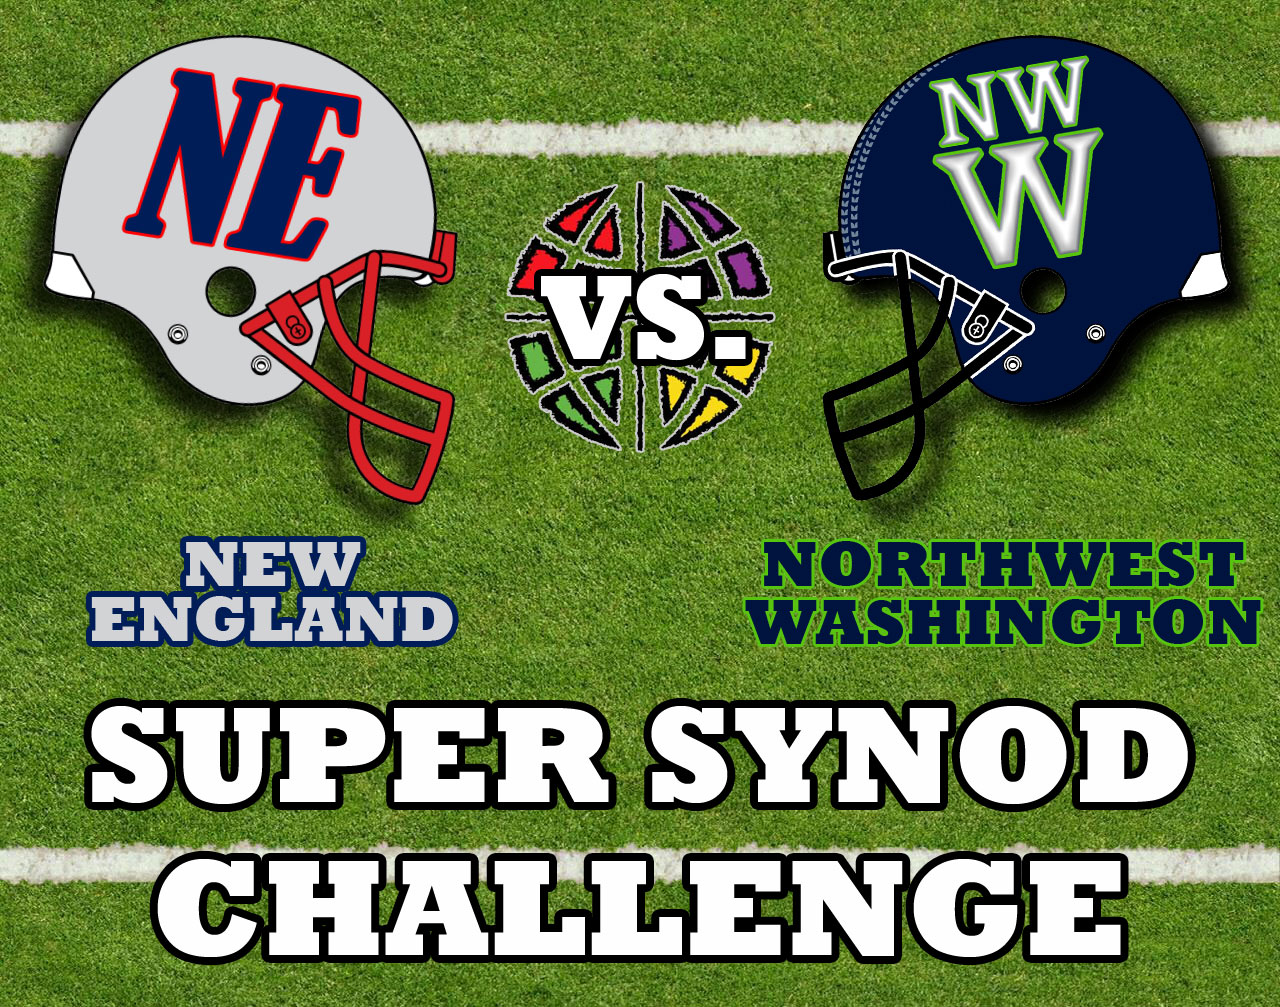 Super Synod Challenge New England helmet vs Northwest Washington helmet